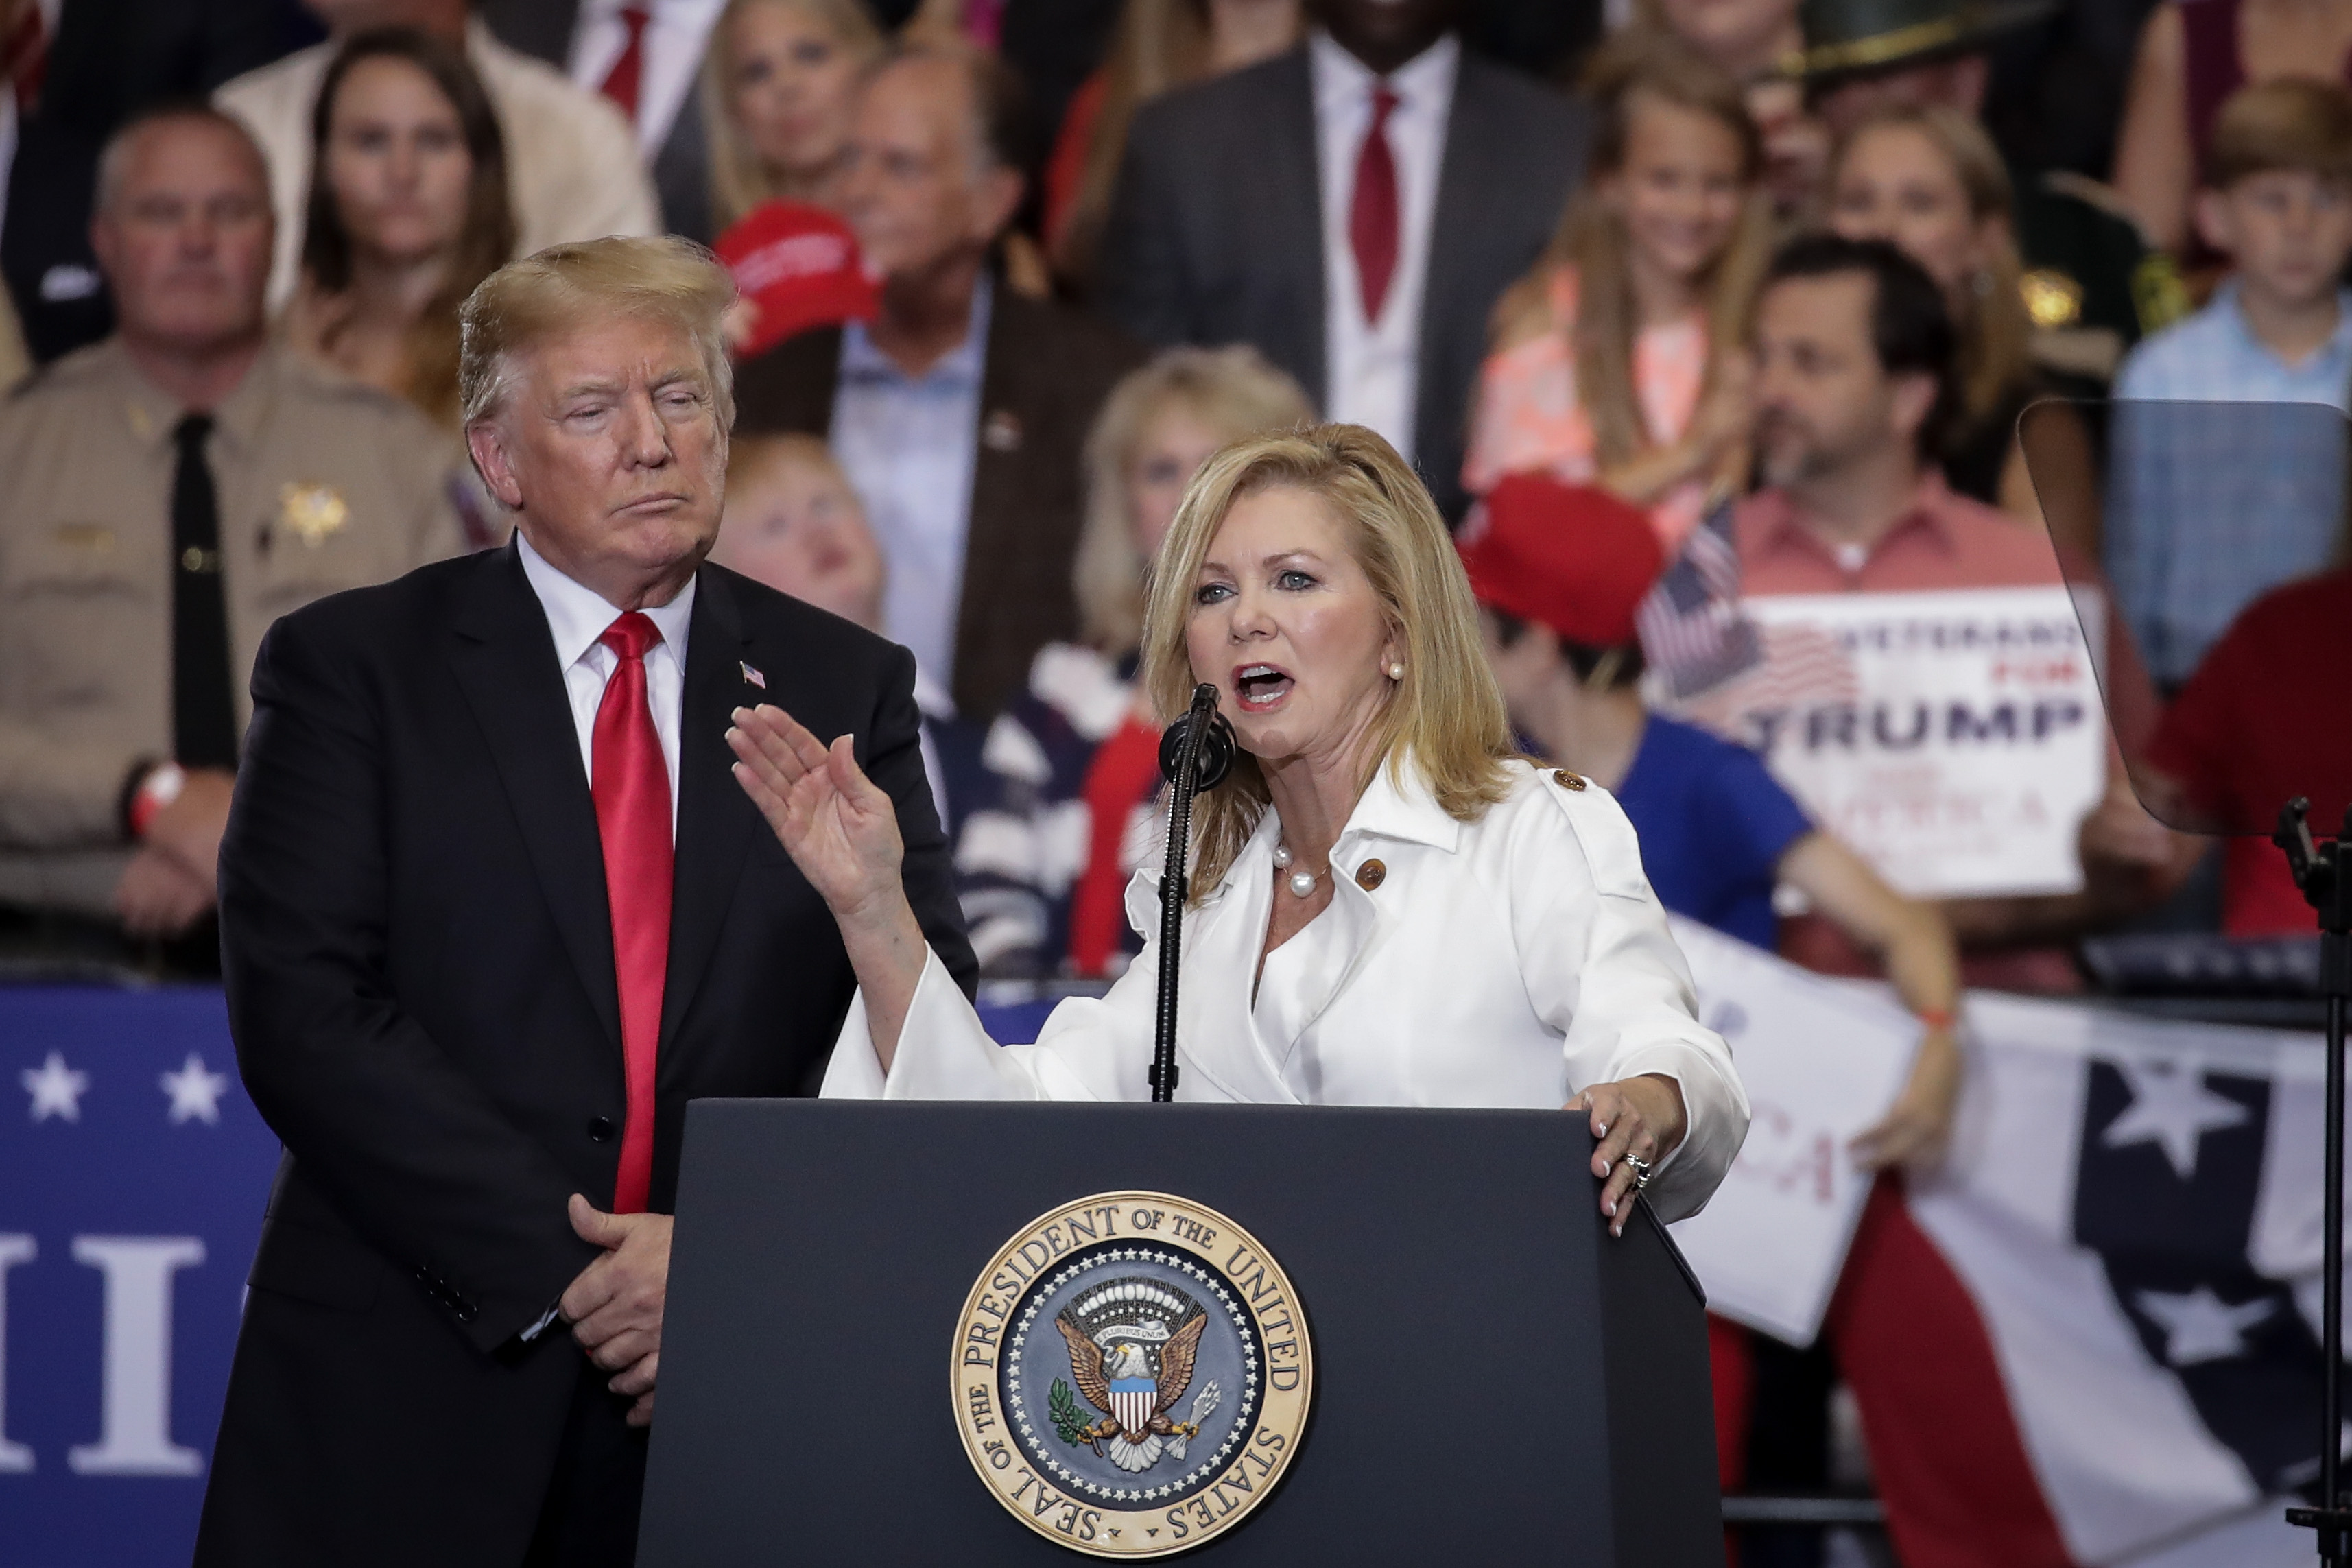 NASHVILLE, TN - MAY 29: (L to R) U.S. President Donald Trump looks on Rep. Marsha Blackburn (R-TN), who is running for U.S. Senate, speaks during a rally at the Nashville Municipal Auditorium, May 29, 2018 in Nashville, Tennessee. Earlier in the day, President Trump held a fundraising event in support Blackburn, who is running against two-term former Tennessee Gov. Phil Bredesen, a Democrat. They are competing for the Senate seat currently held by Sen. Bob Corker (R-TN), who declined to run for a third term. Recent polling indicates a close race between Blackburn and Bredesen. (Photo by Drew Angerer/Getty Images)